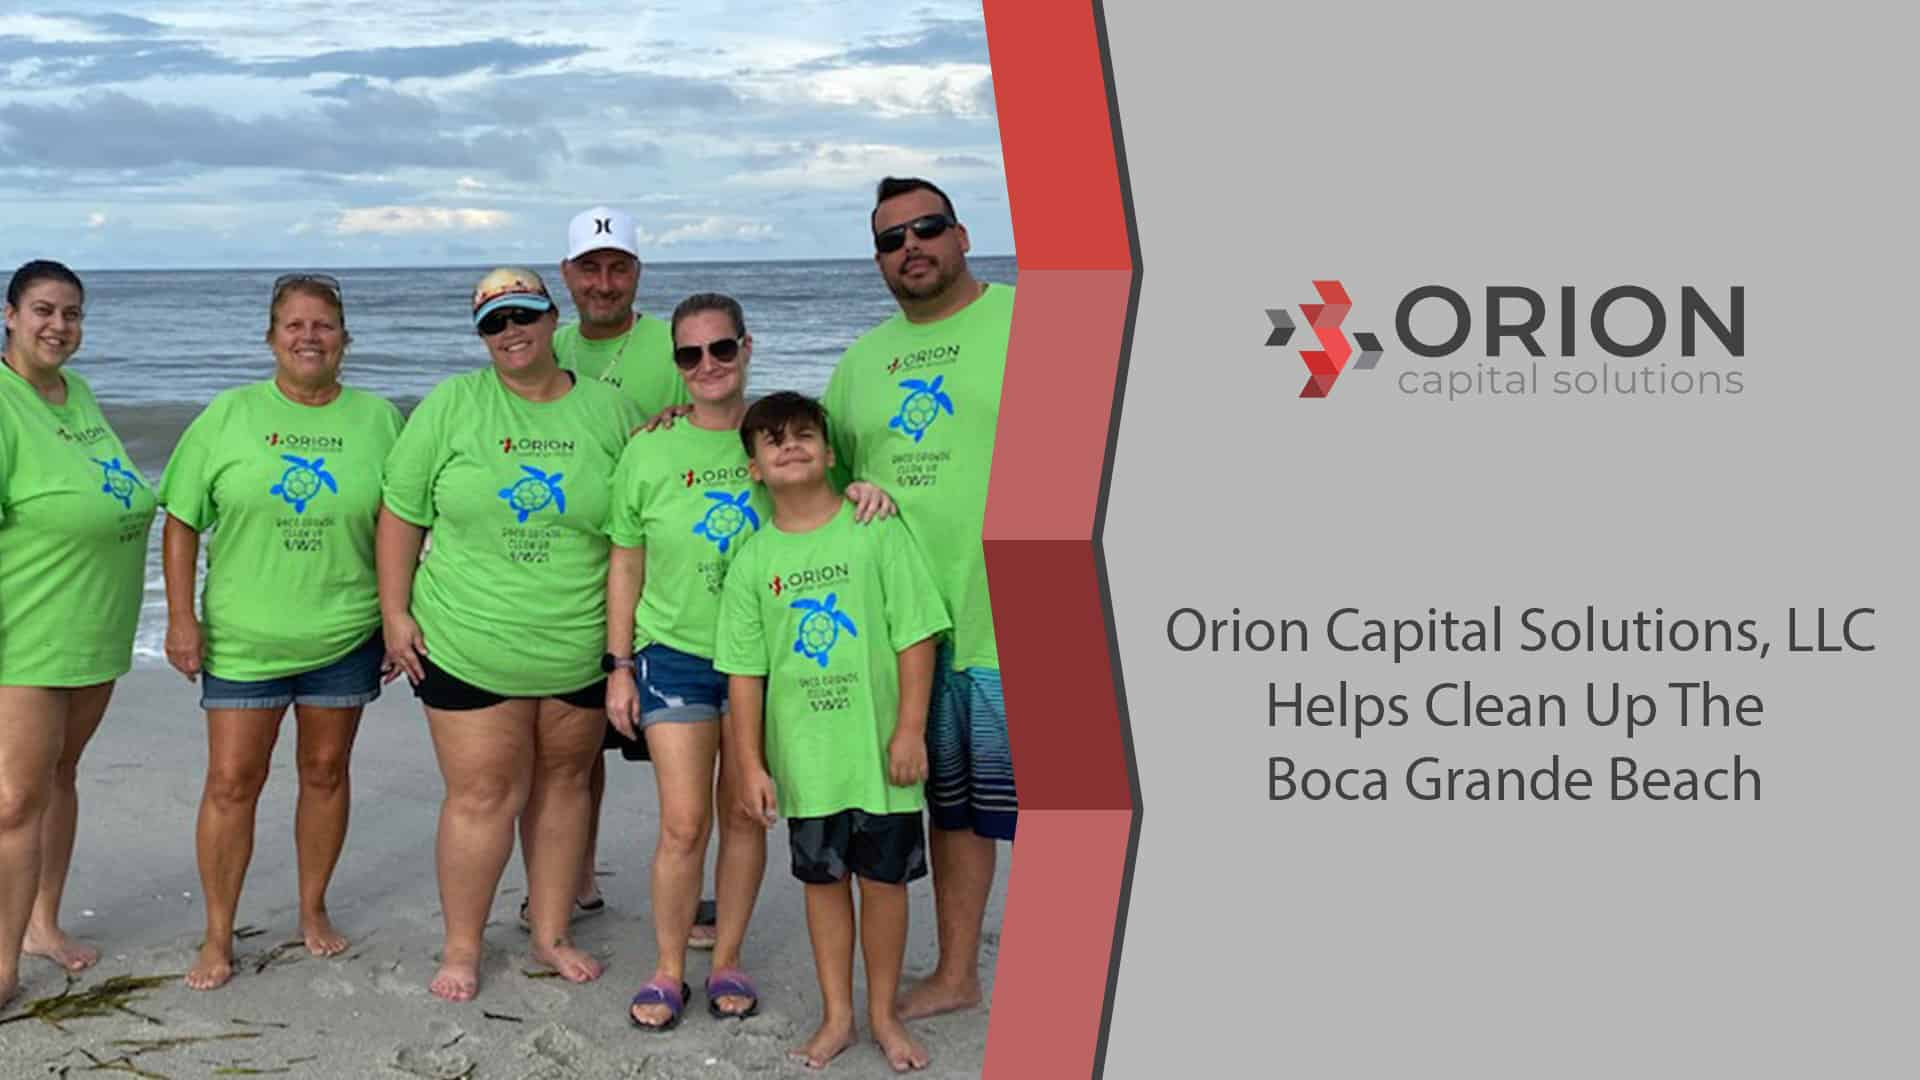 Orion team members at beach cleanup